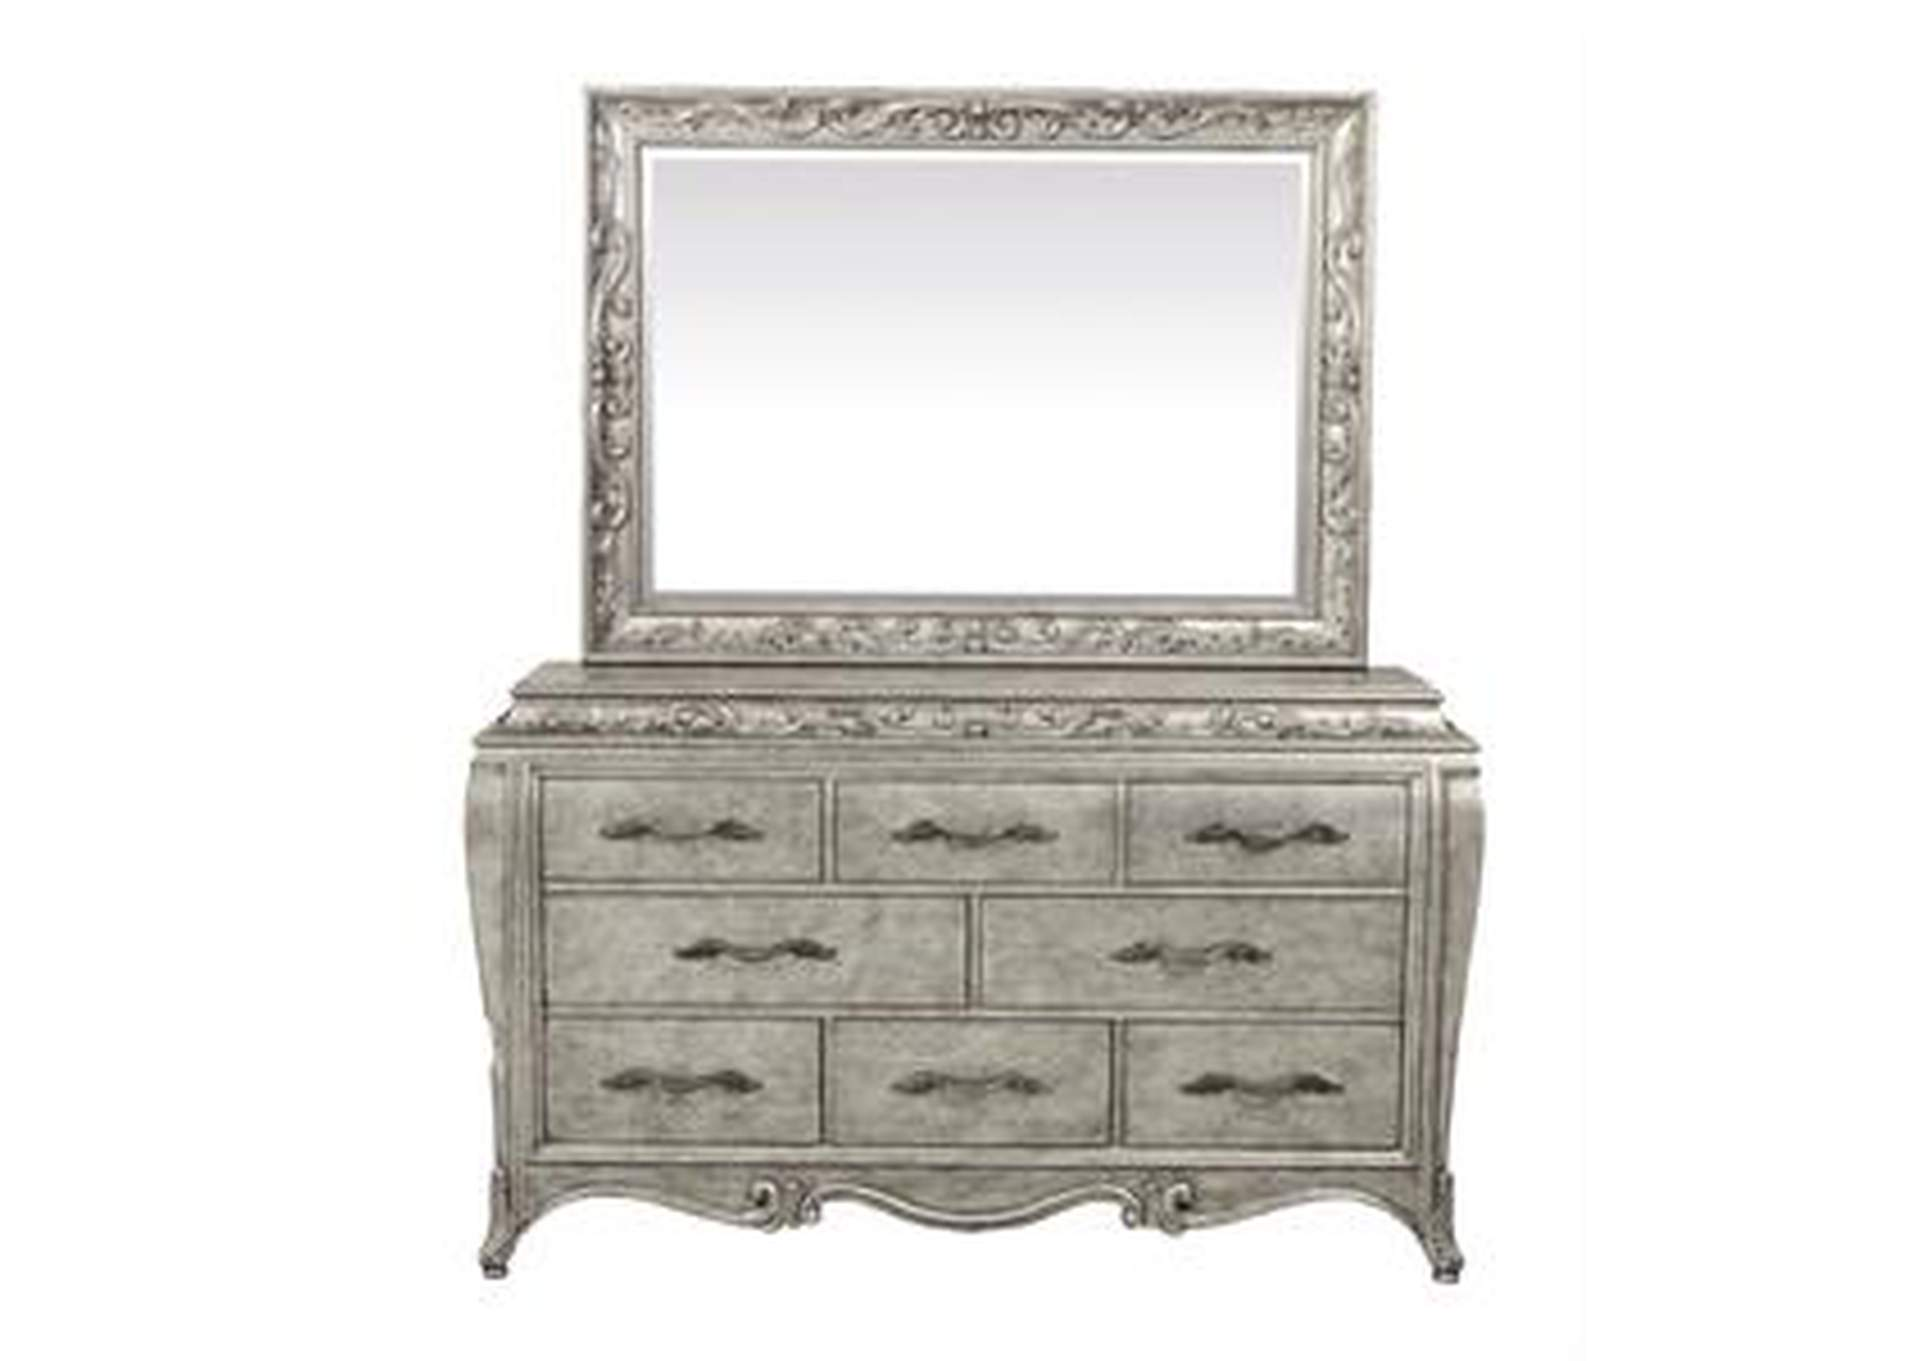 Rhianna Landscape Mirror,Pulaski Furniture